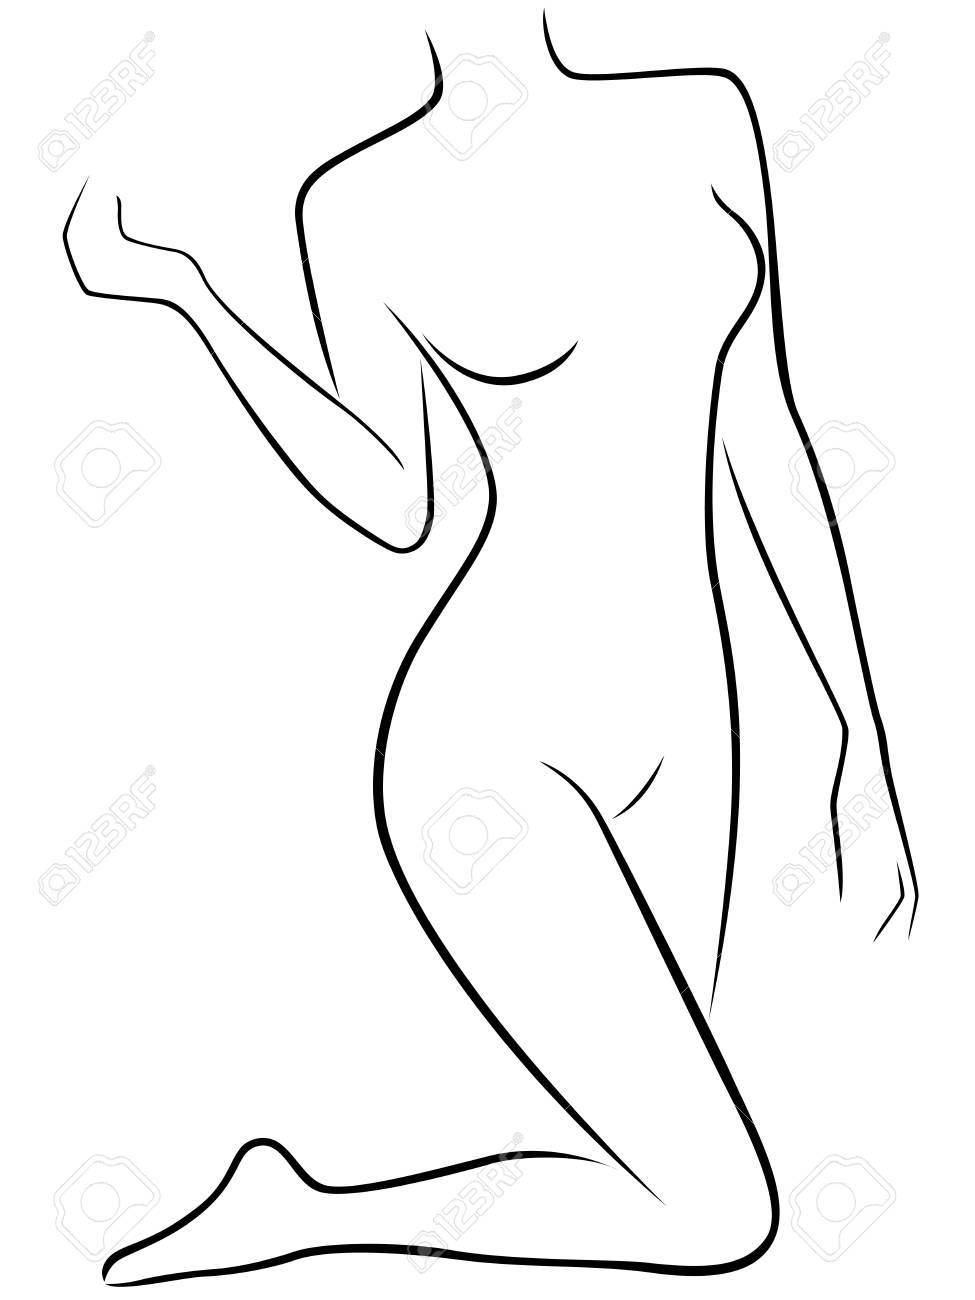 Outline Of Body Drawing